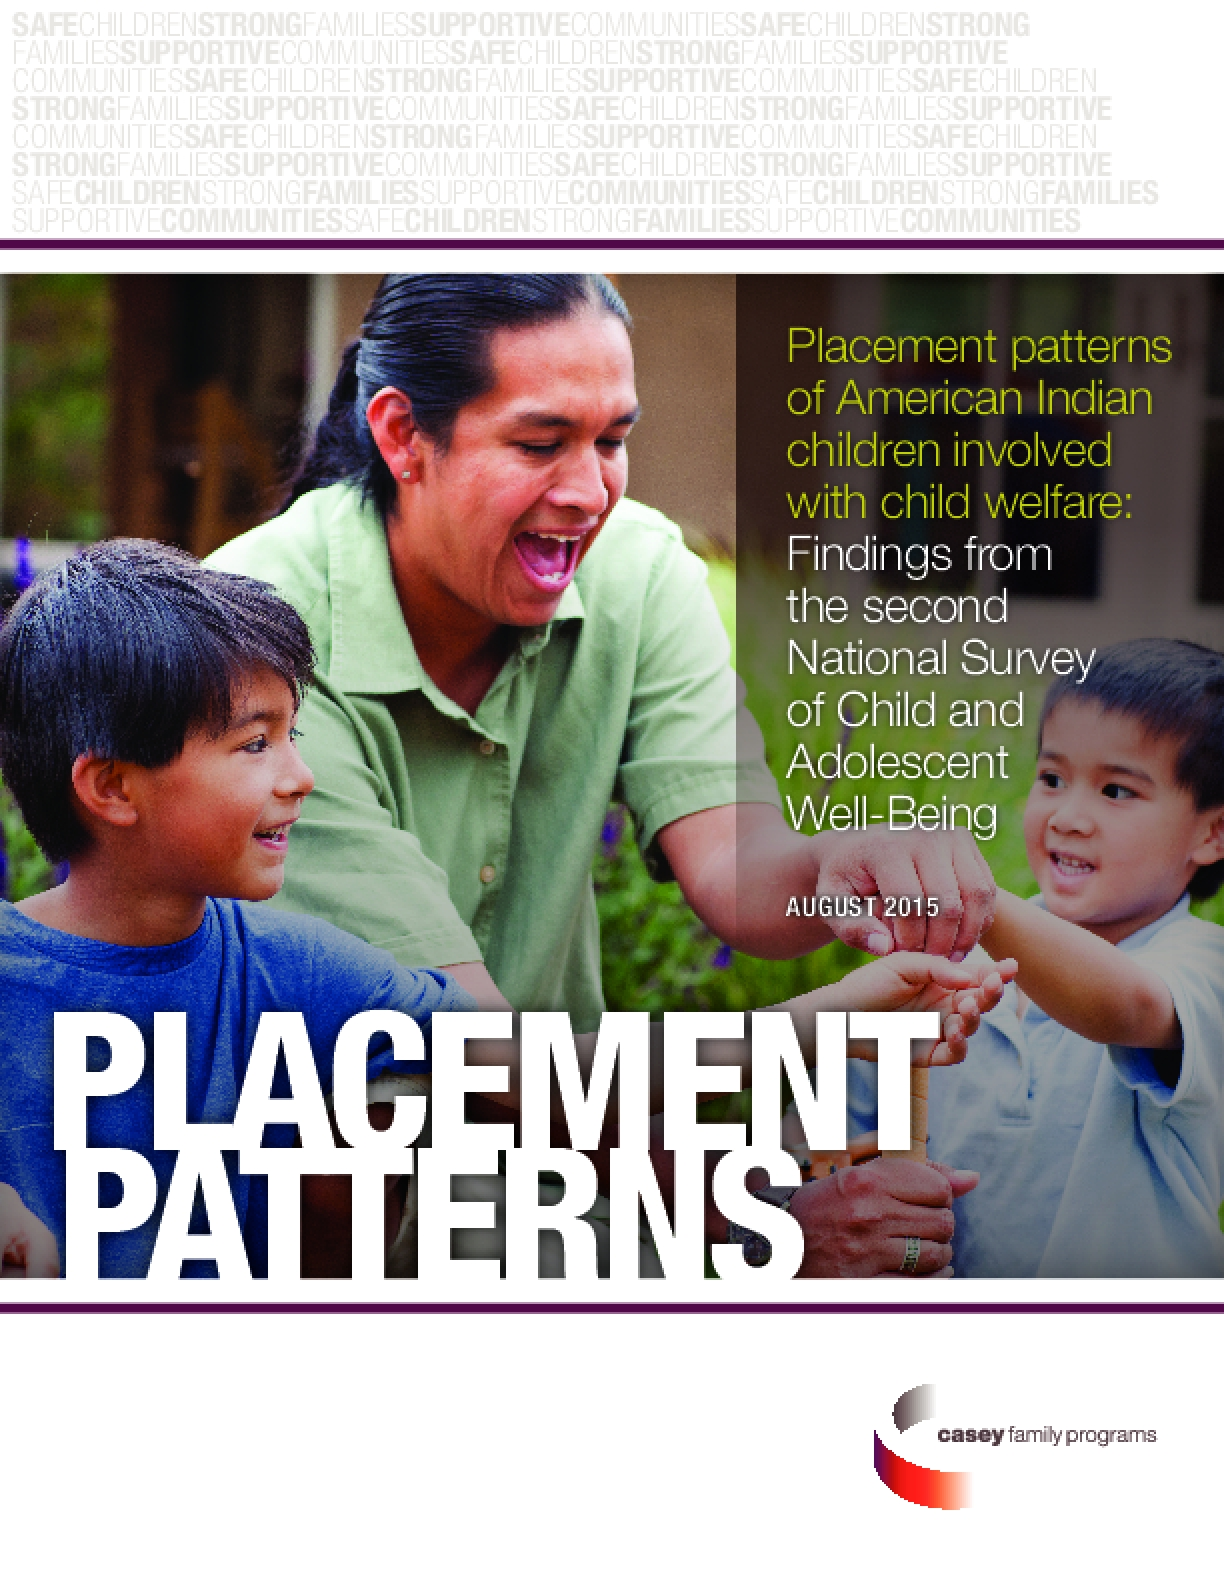 Placement patterns of American Indian children involved with child welfare: Findings from the second National Survey of Child and Adolescent Well-Being